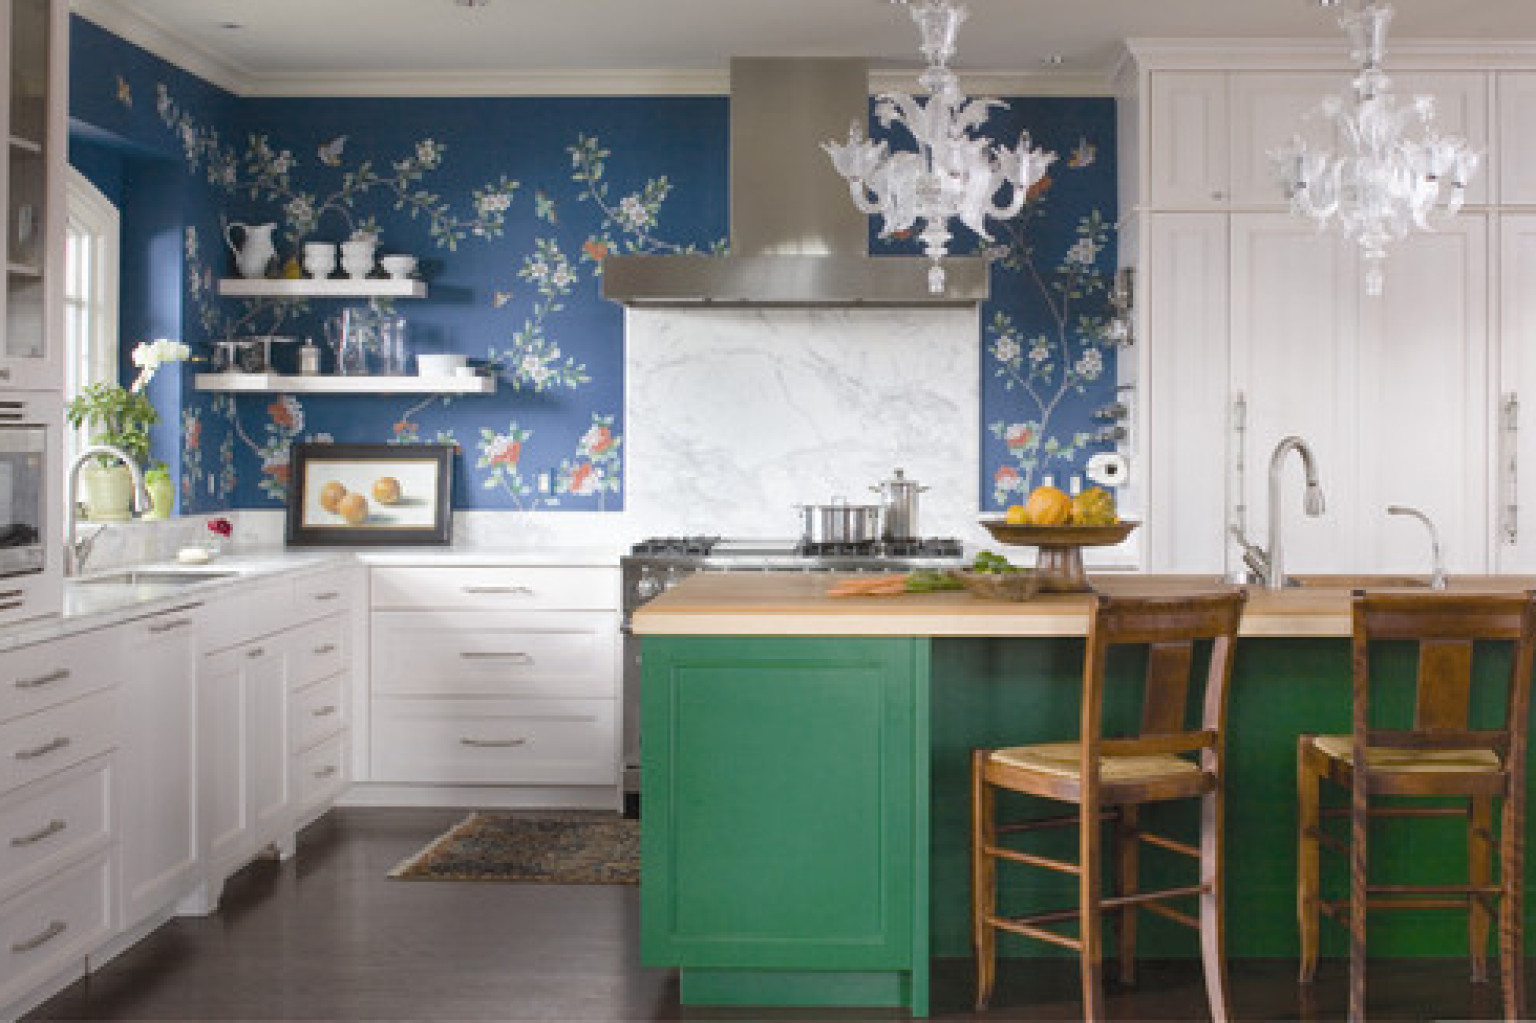 20 amazing kitchens each one is dream home worthy photos huffpost